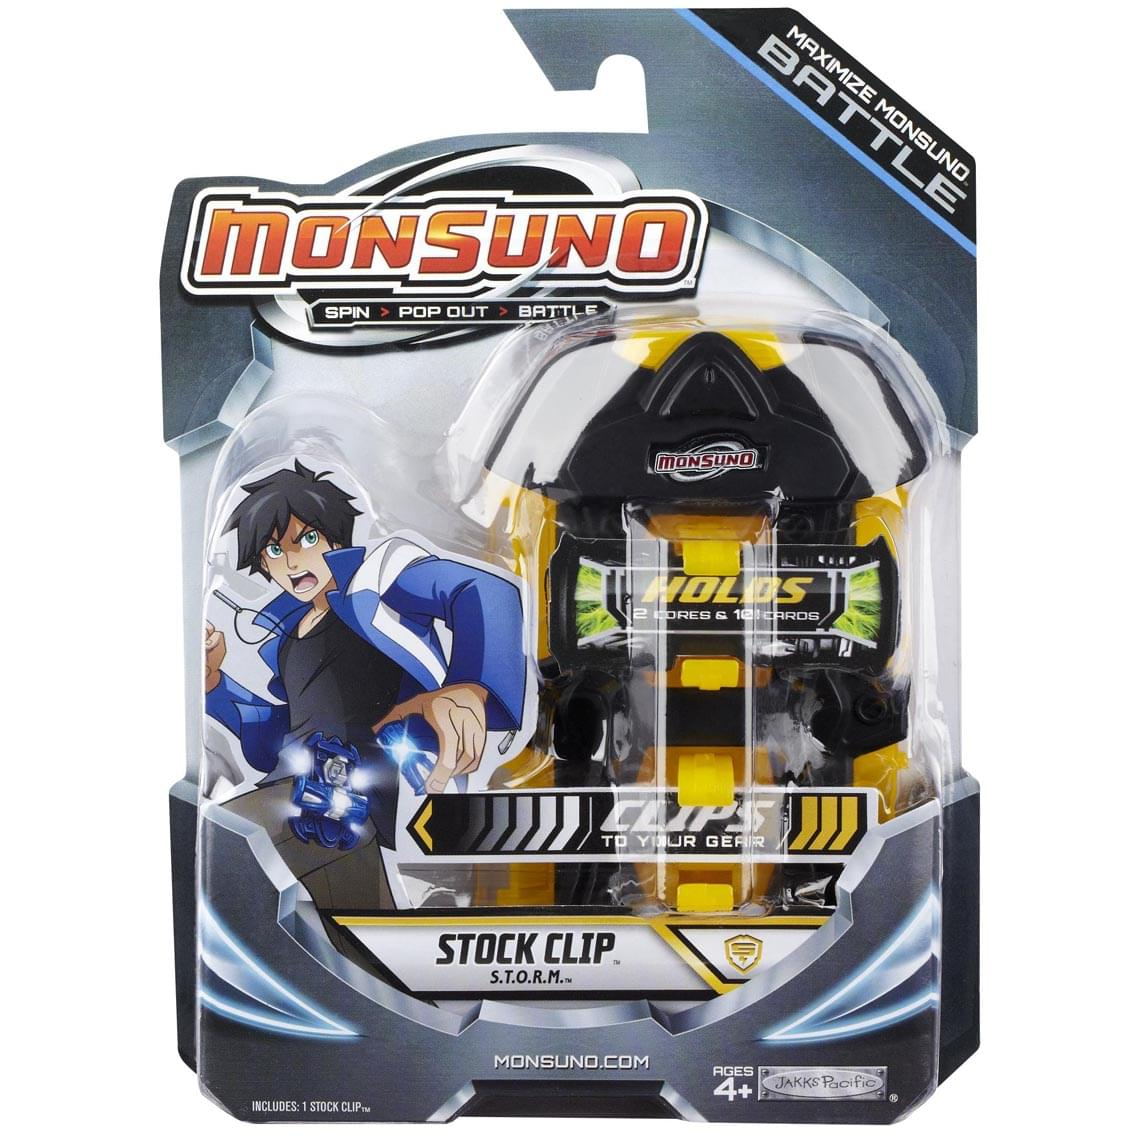 Monsuno Stock Clip Wave #1: Storm